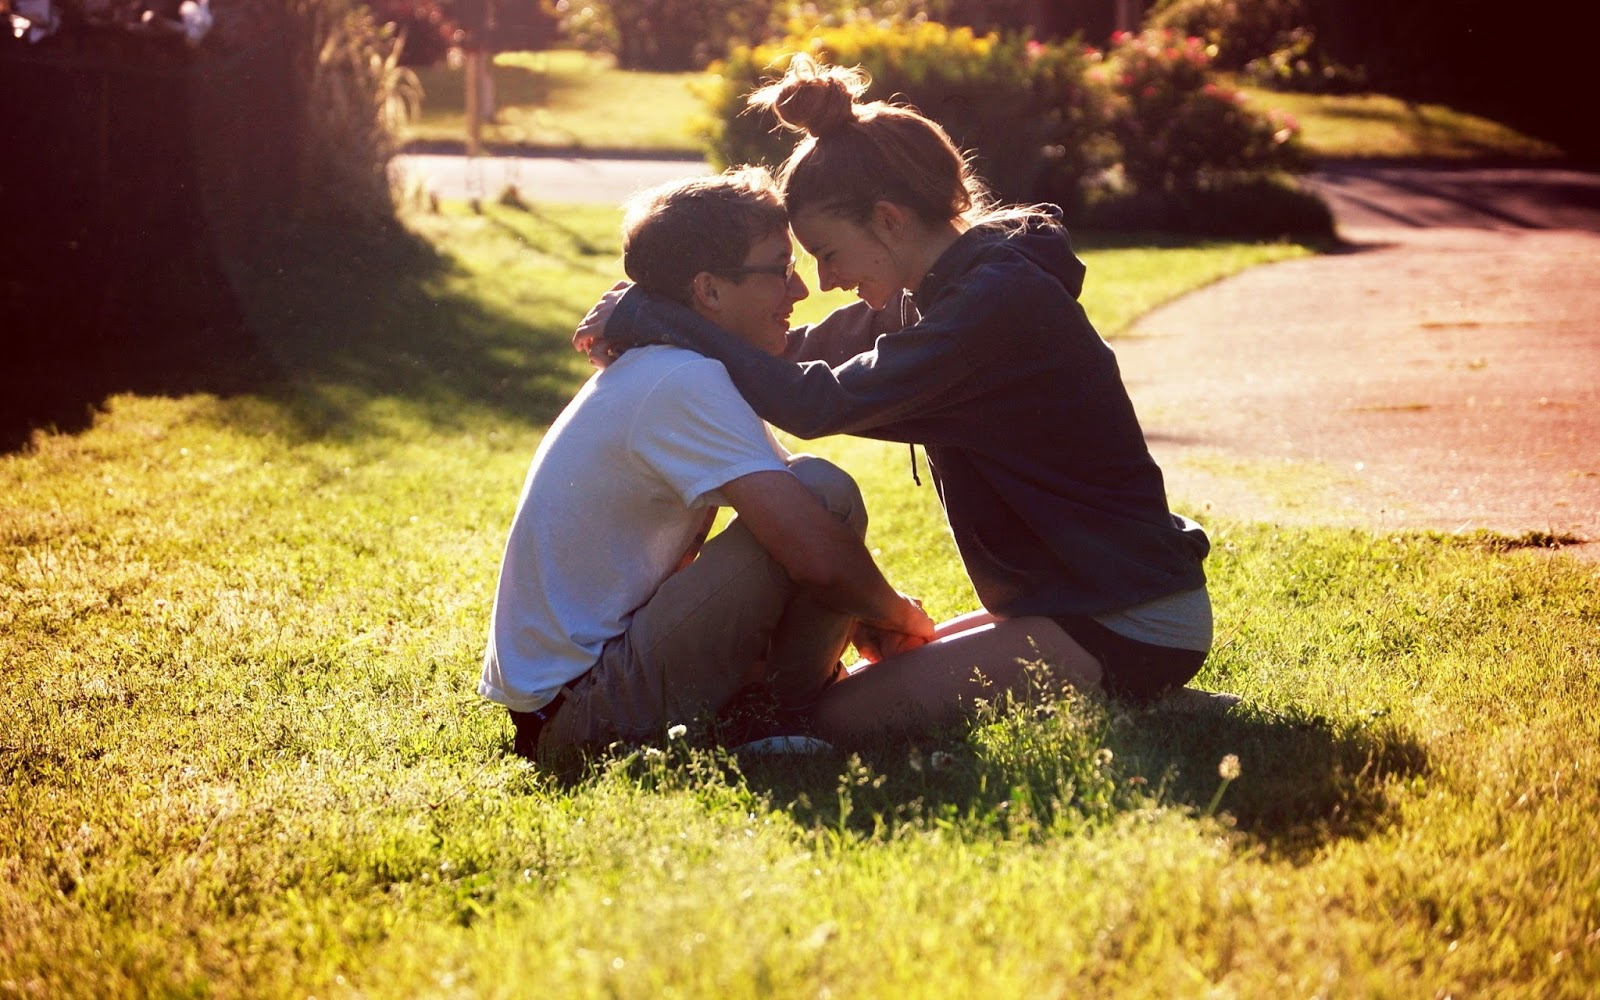 Alone Girl Wallpaper For Shayari Best 68 Wallpapers Of Romantic Boy And Girl In Love Kiss